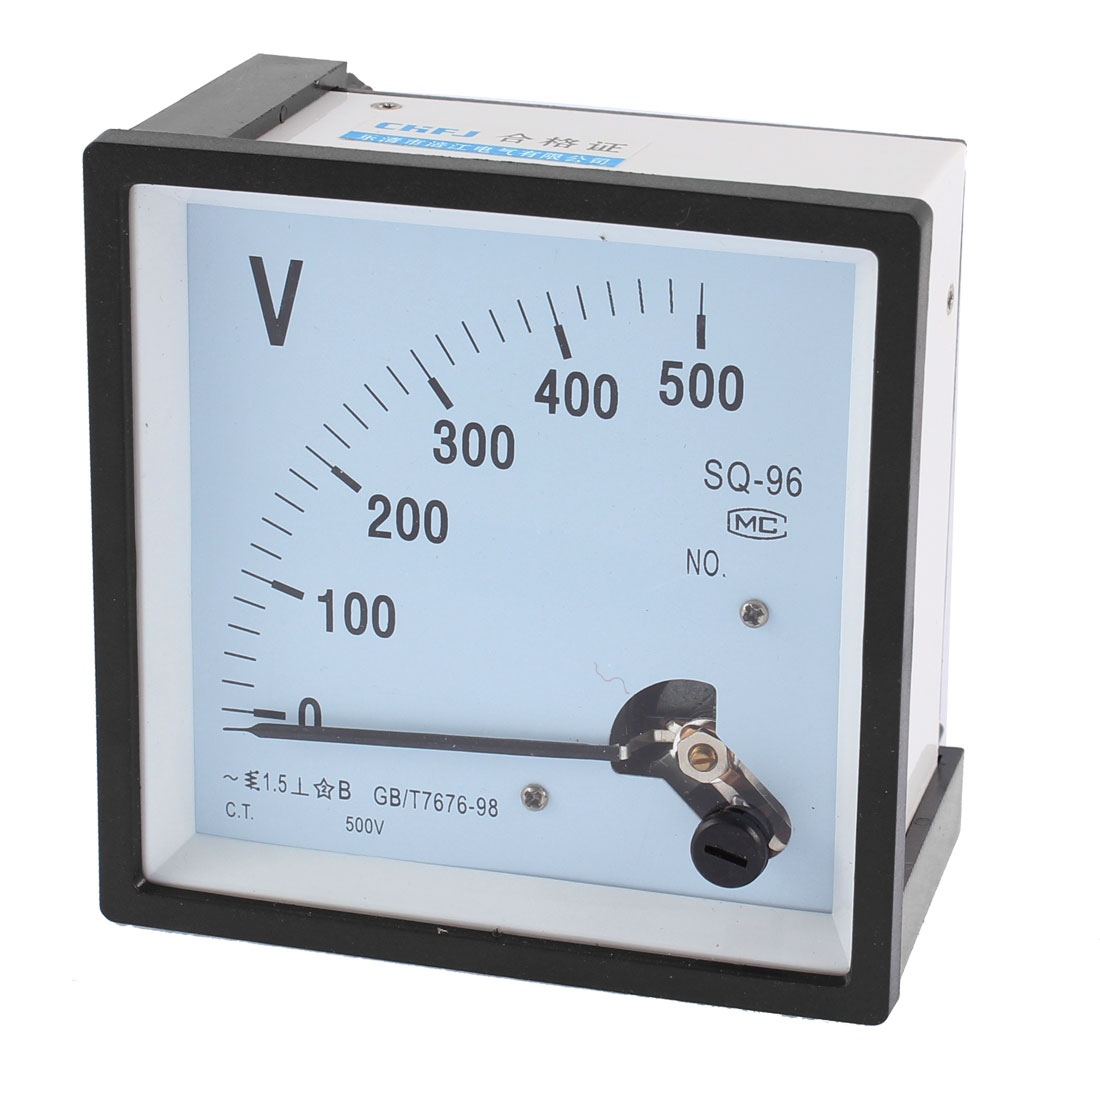 AC 0-500V Class 1.5 Accuracy Rectangle Analog Panel Volt Meter Voltmeter Gauge